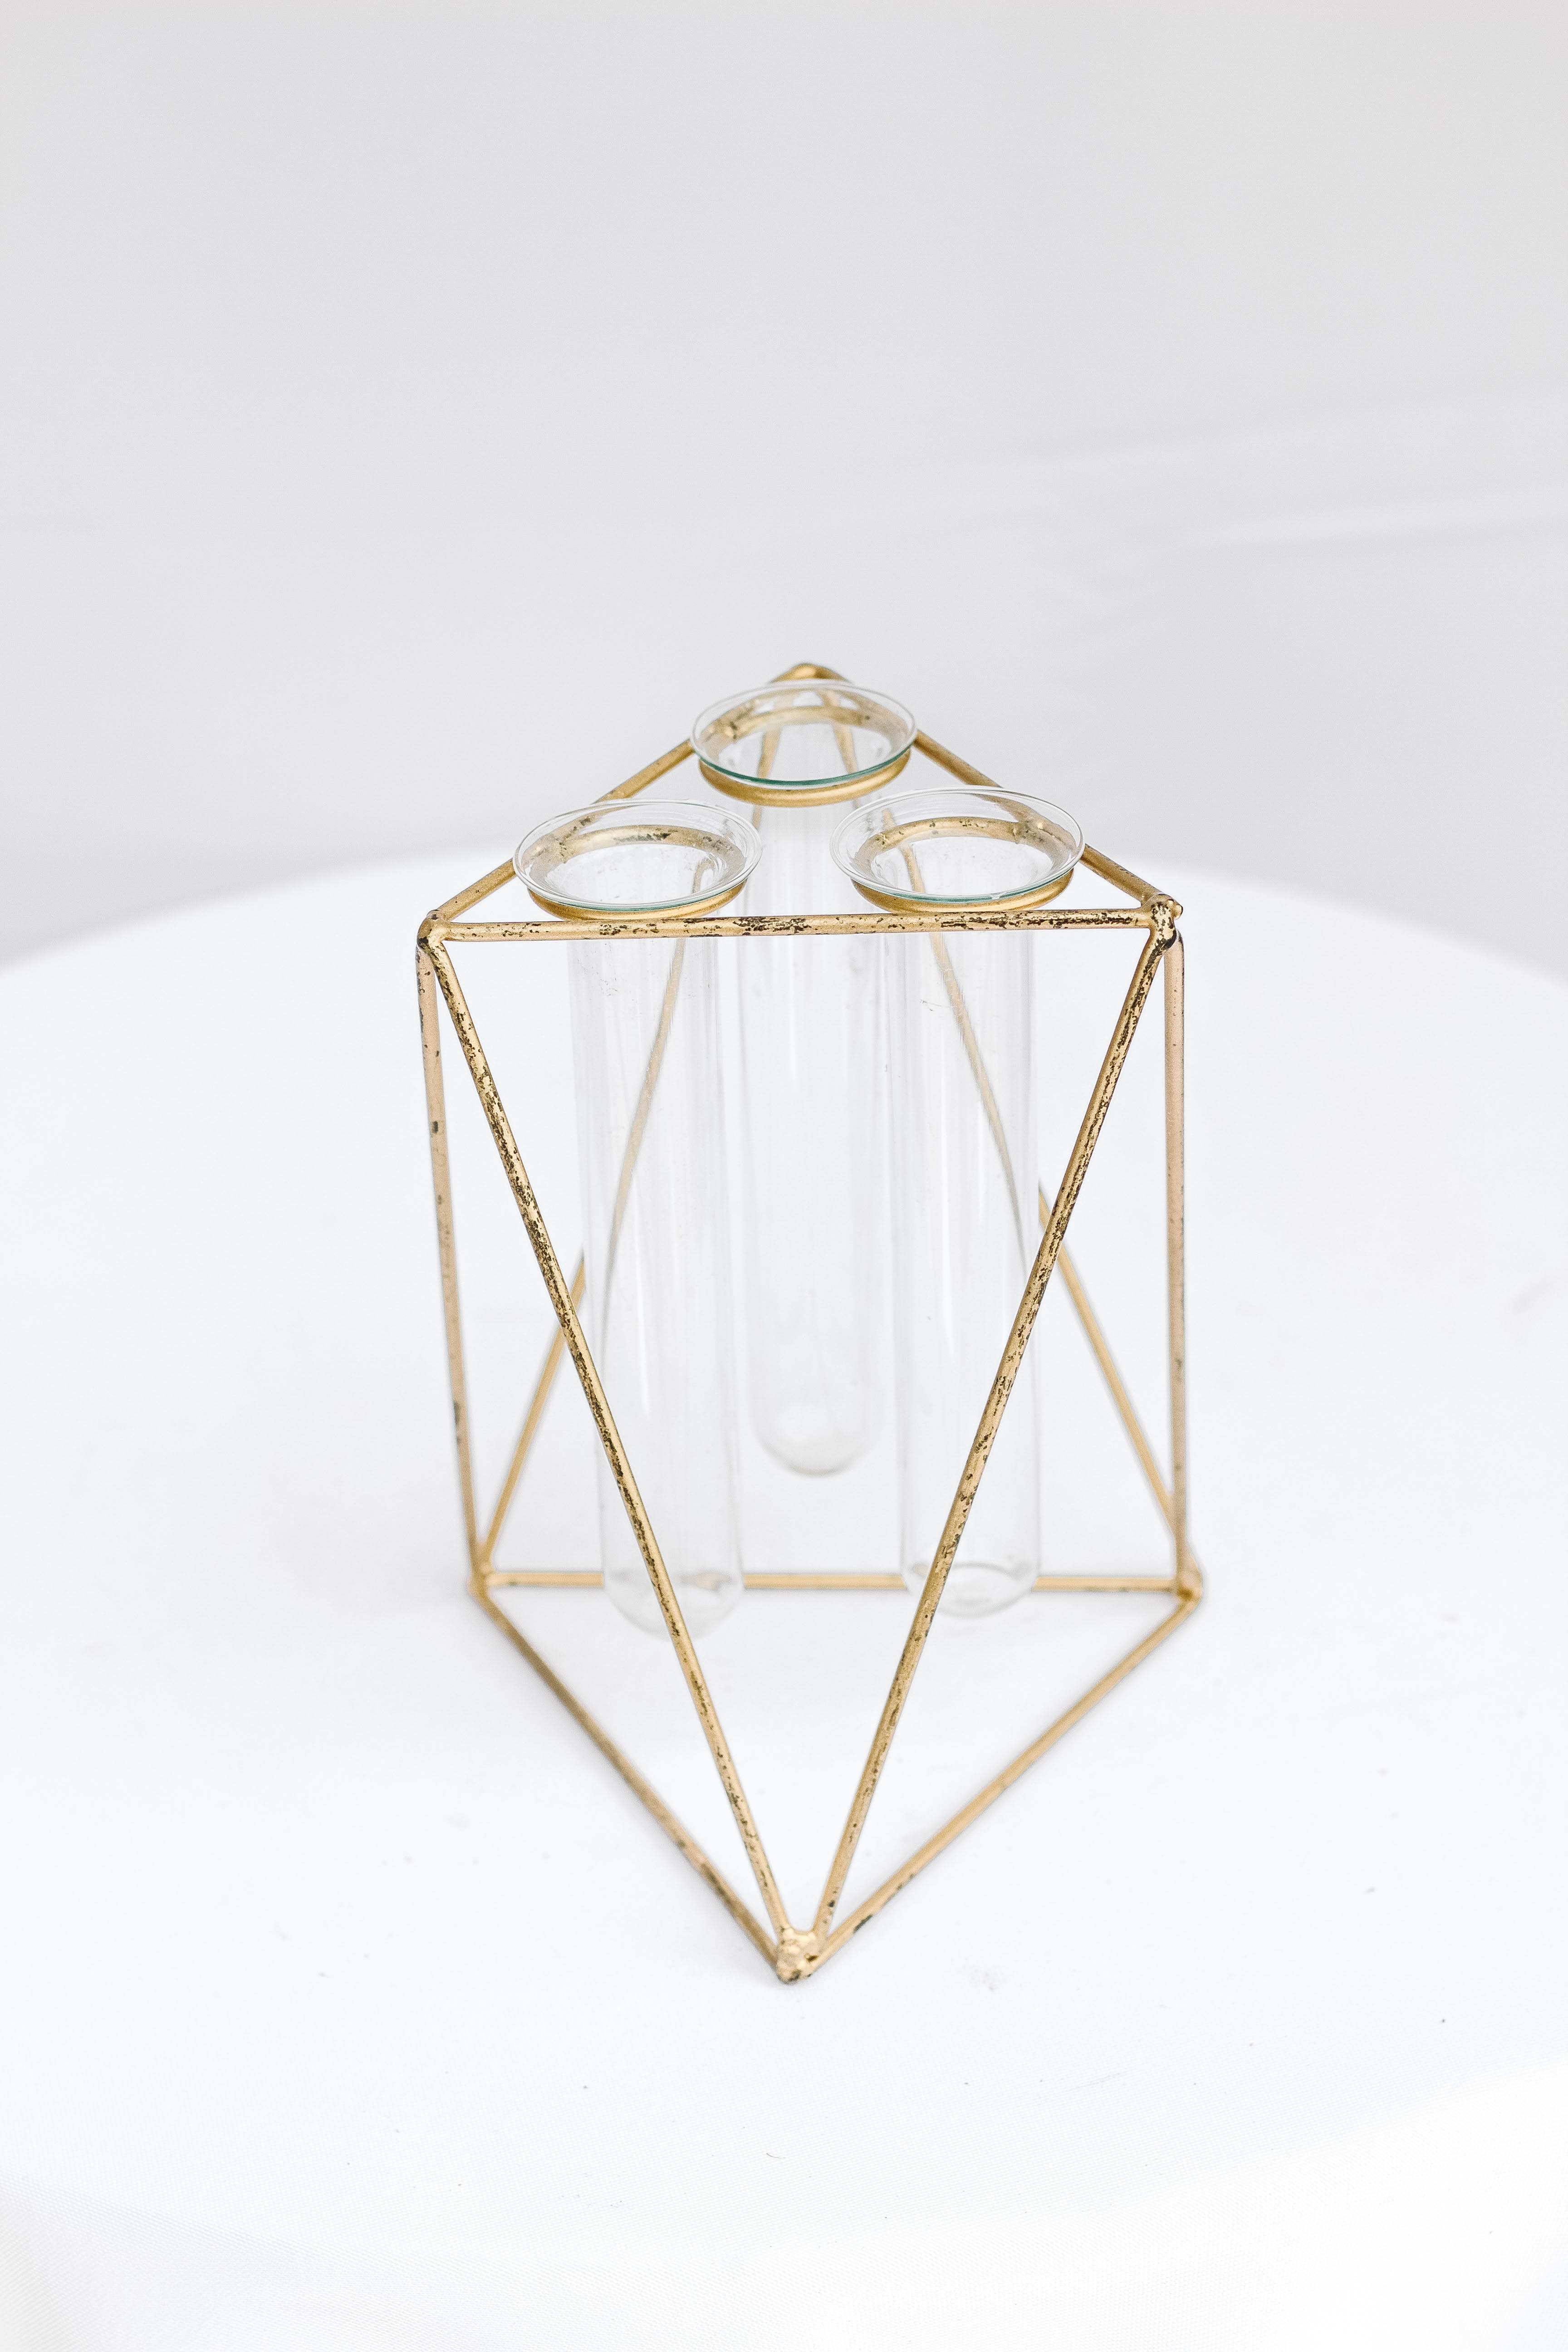 3D Triangle with Tube Vase